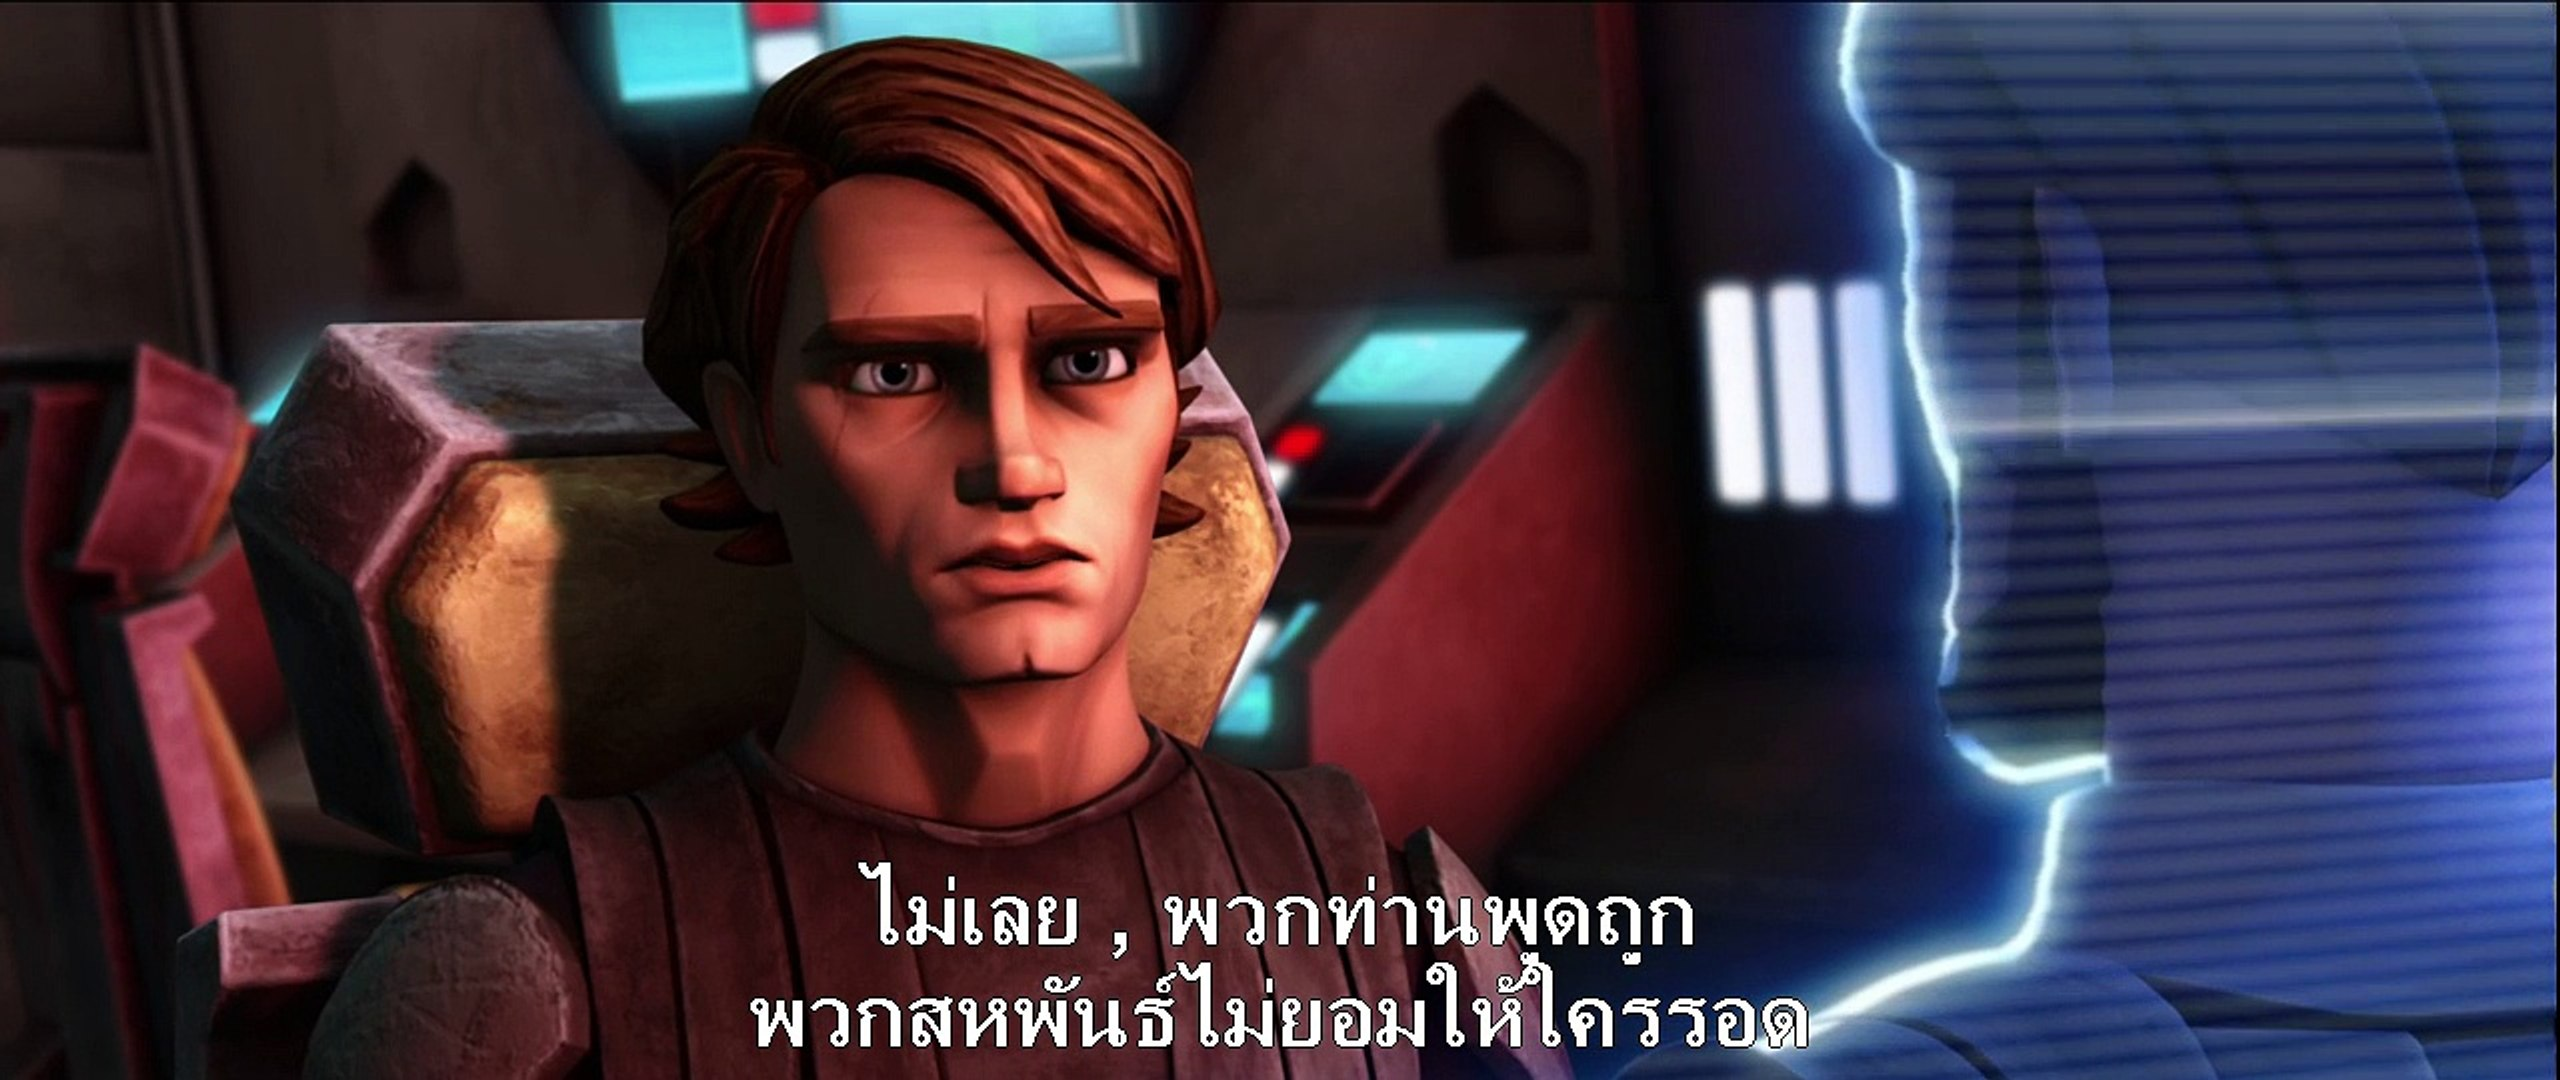 Star Wars Clone Wars Season 1 Episode 2 ซับไทย